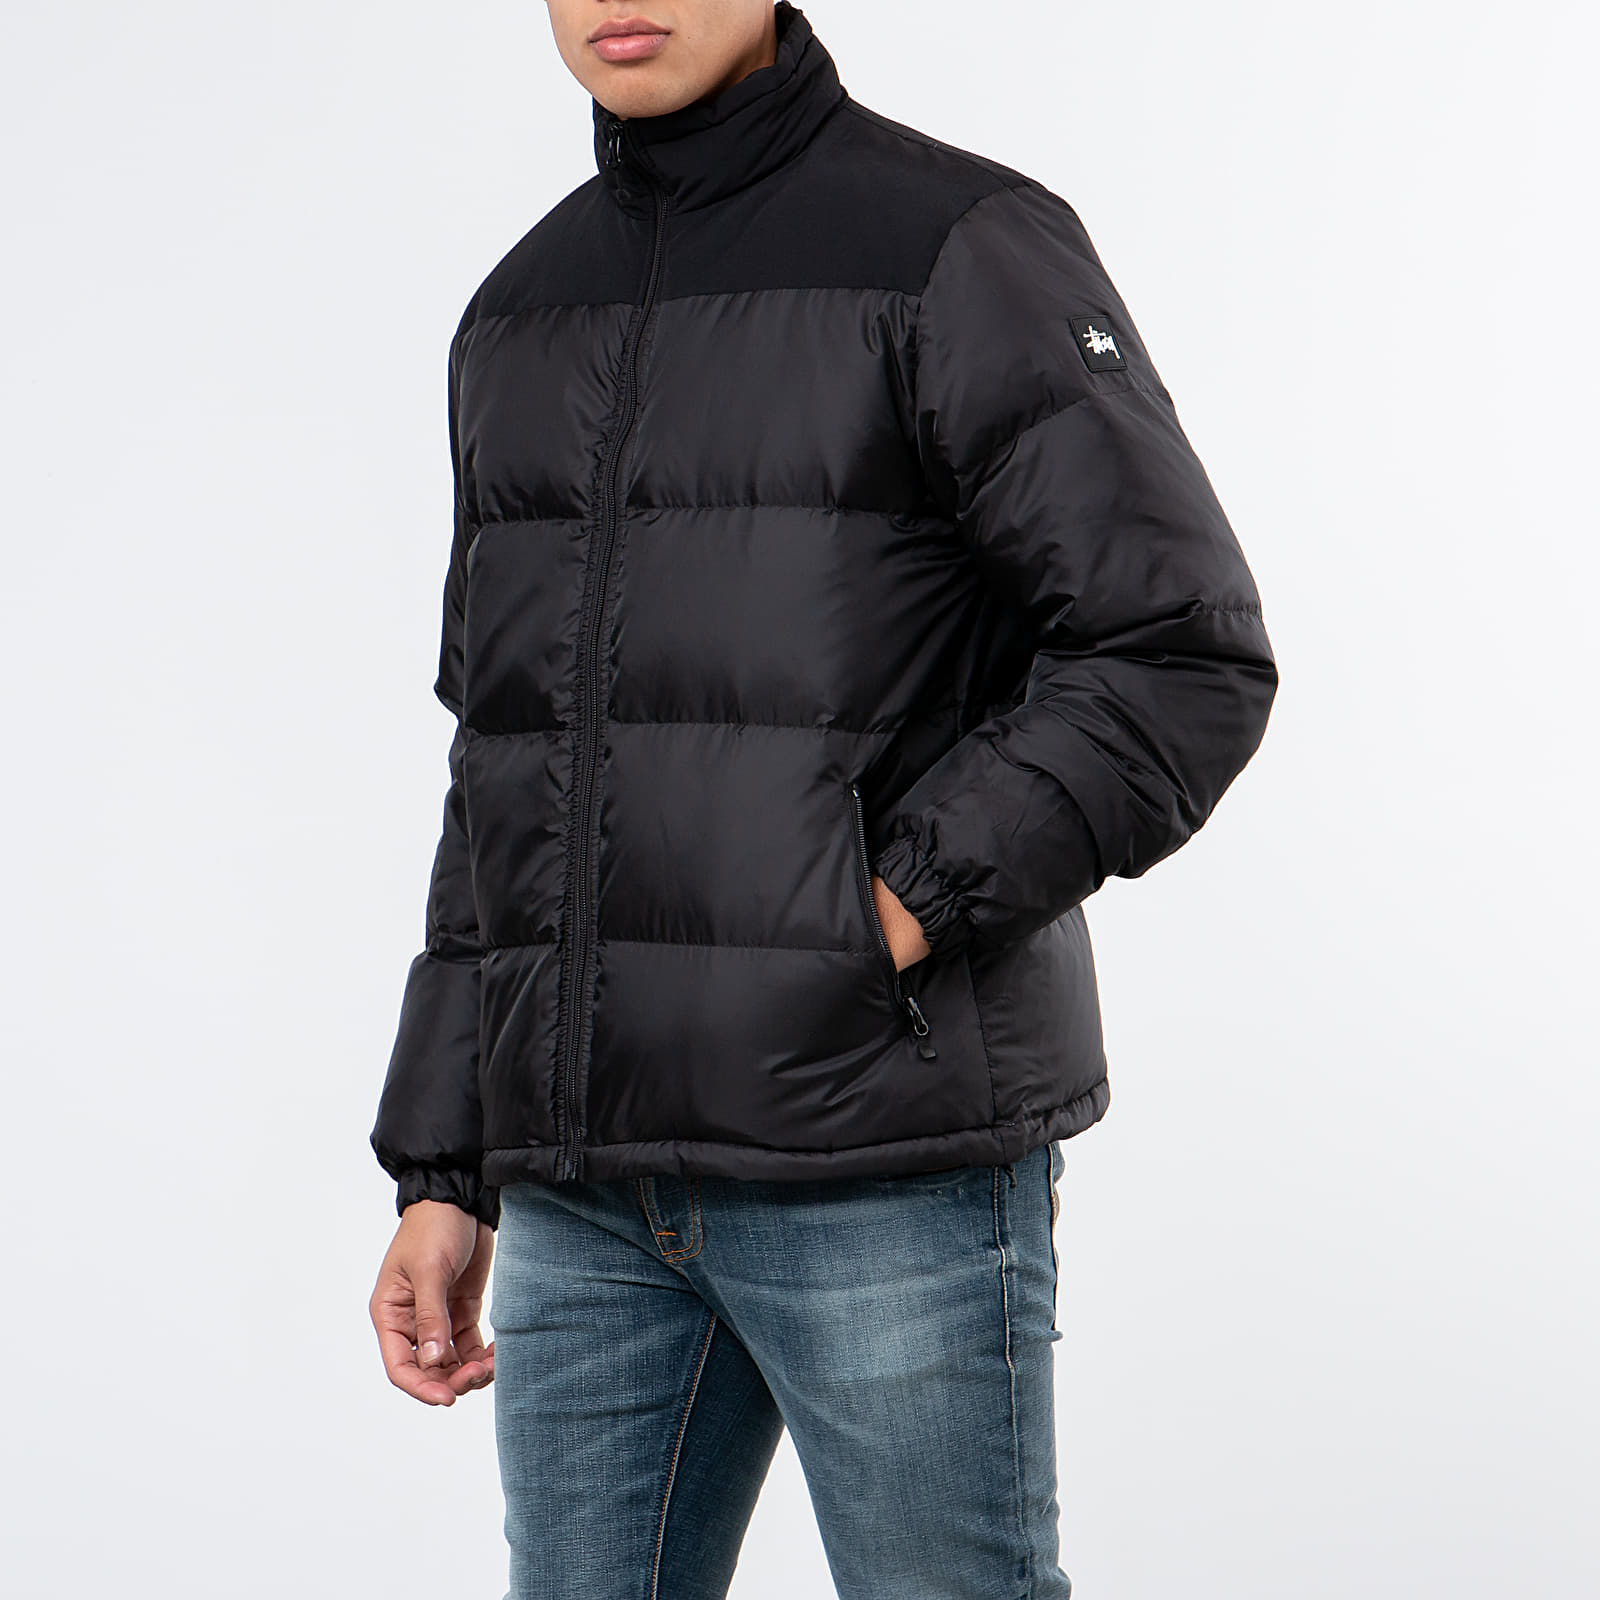 Jackets Stüssy Puffer Jacket Black